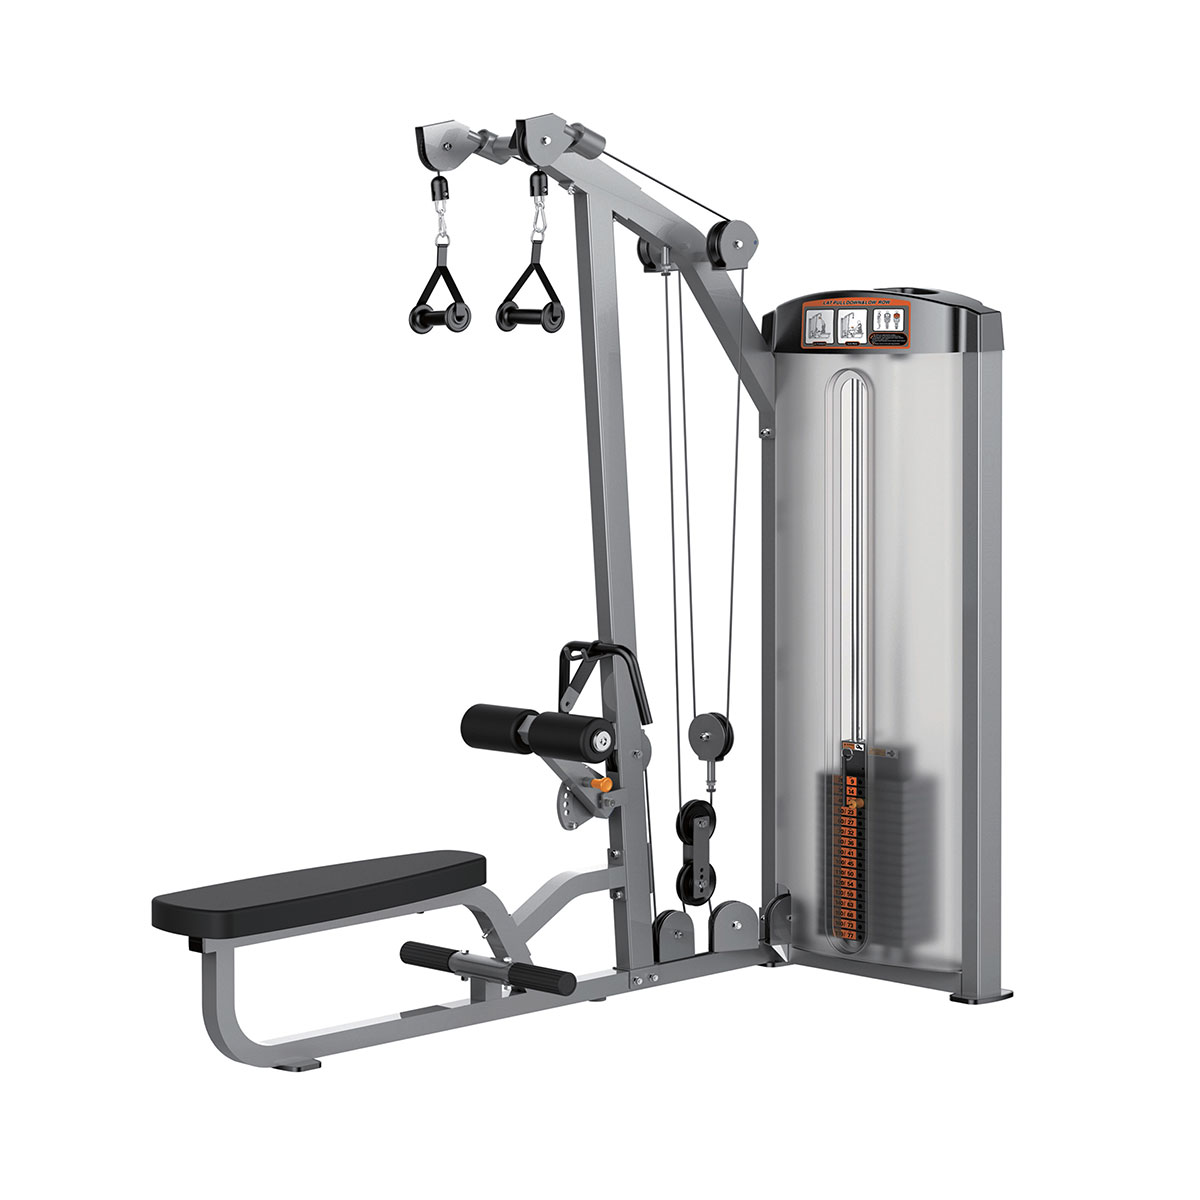 Lat Pulldown / Low Row - 250 lbs